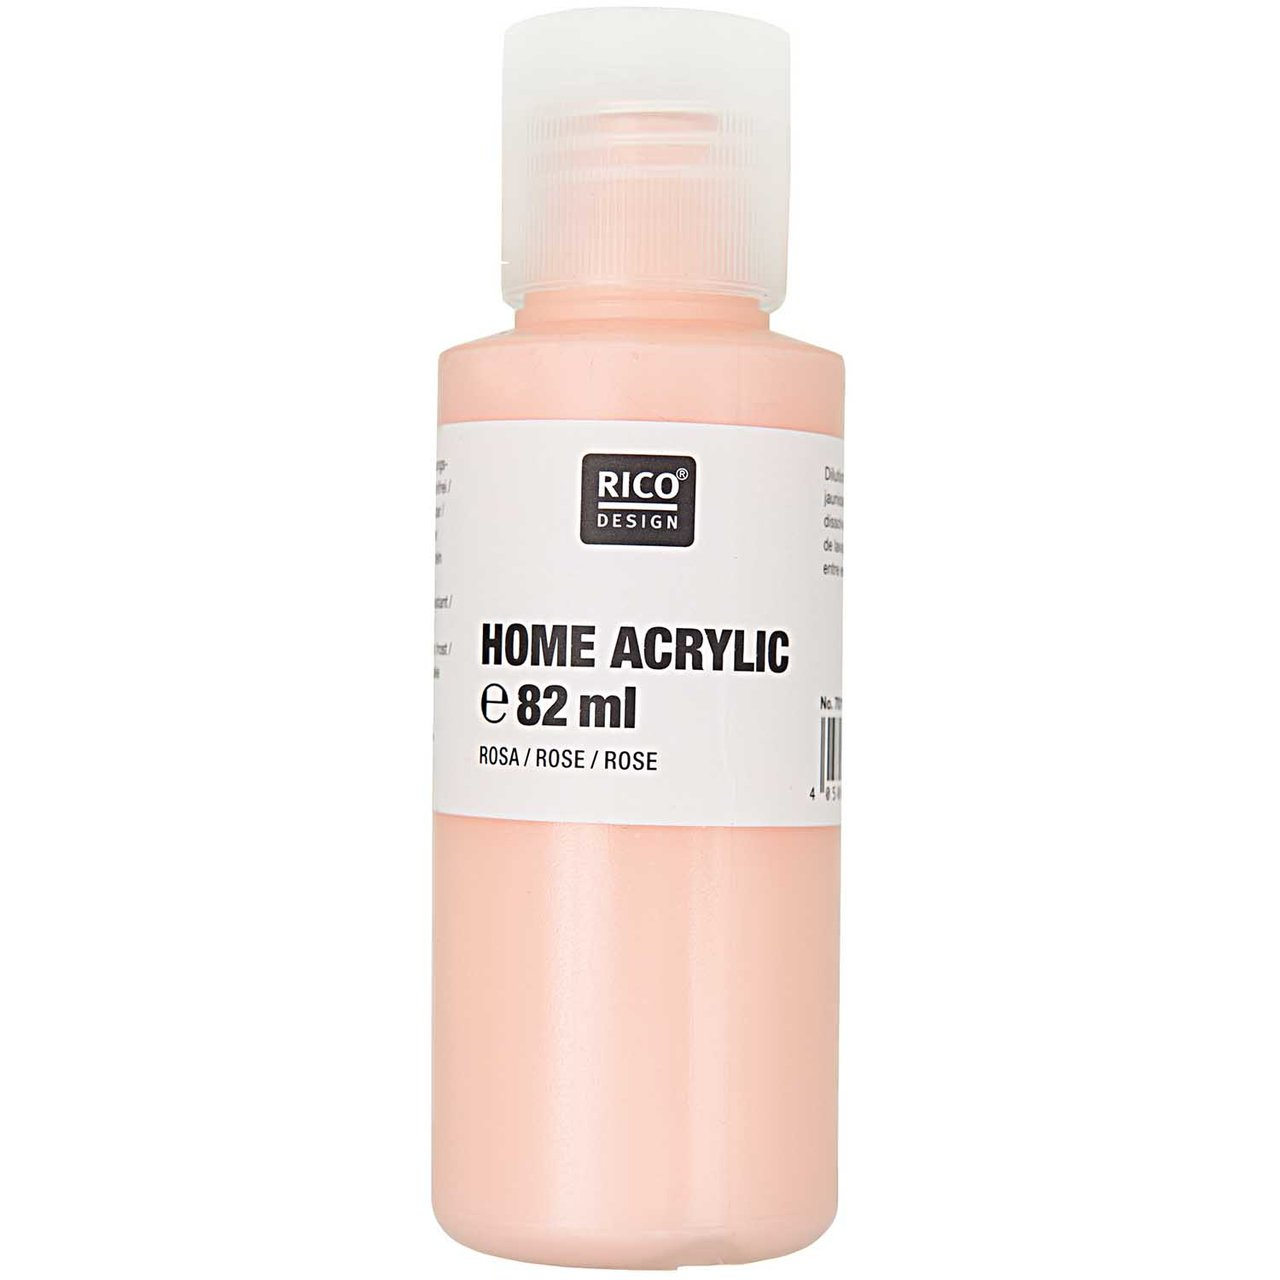 Rico Design Home Acrylic 82ml rosa von Rico Design